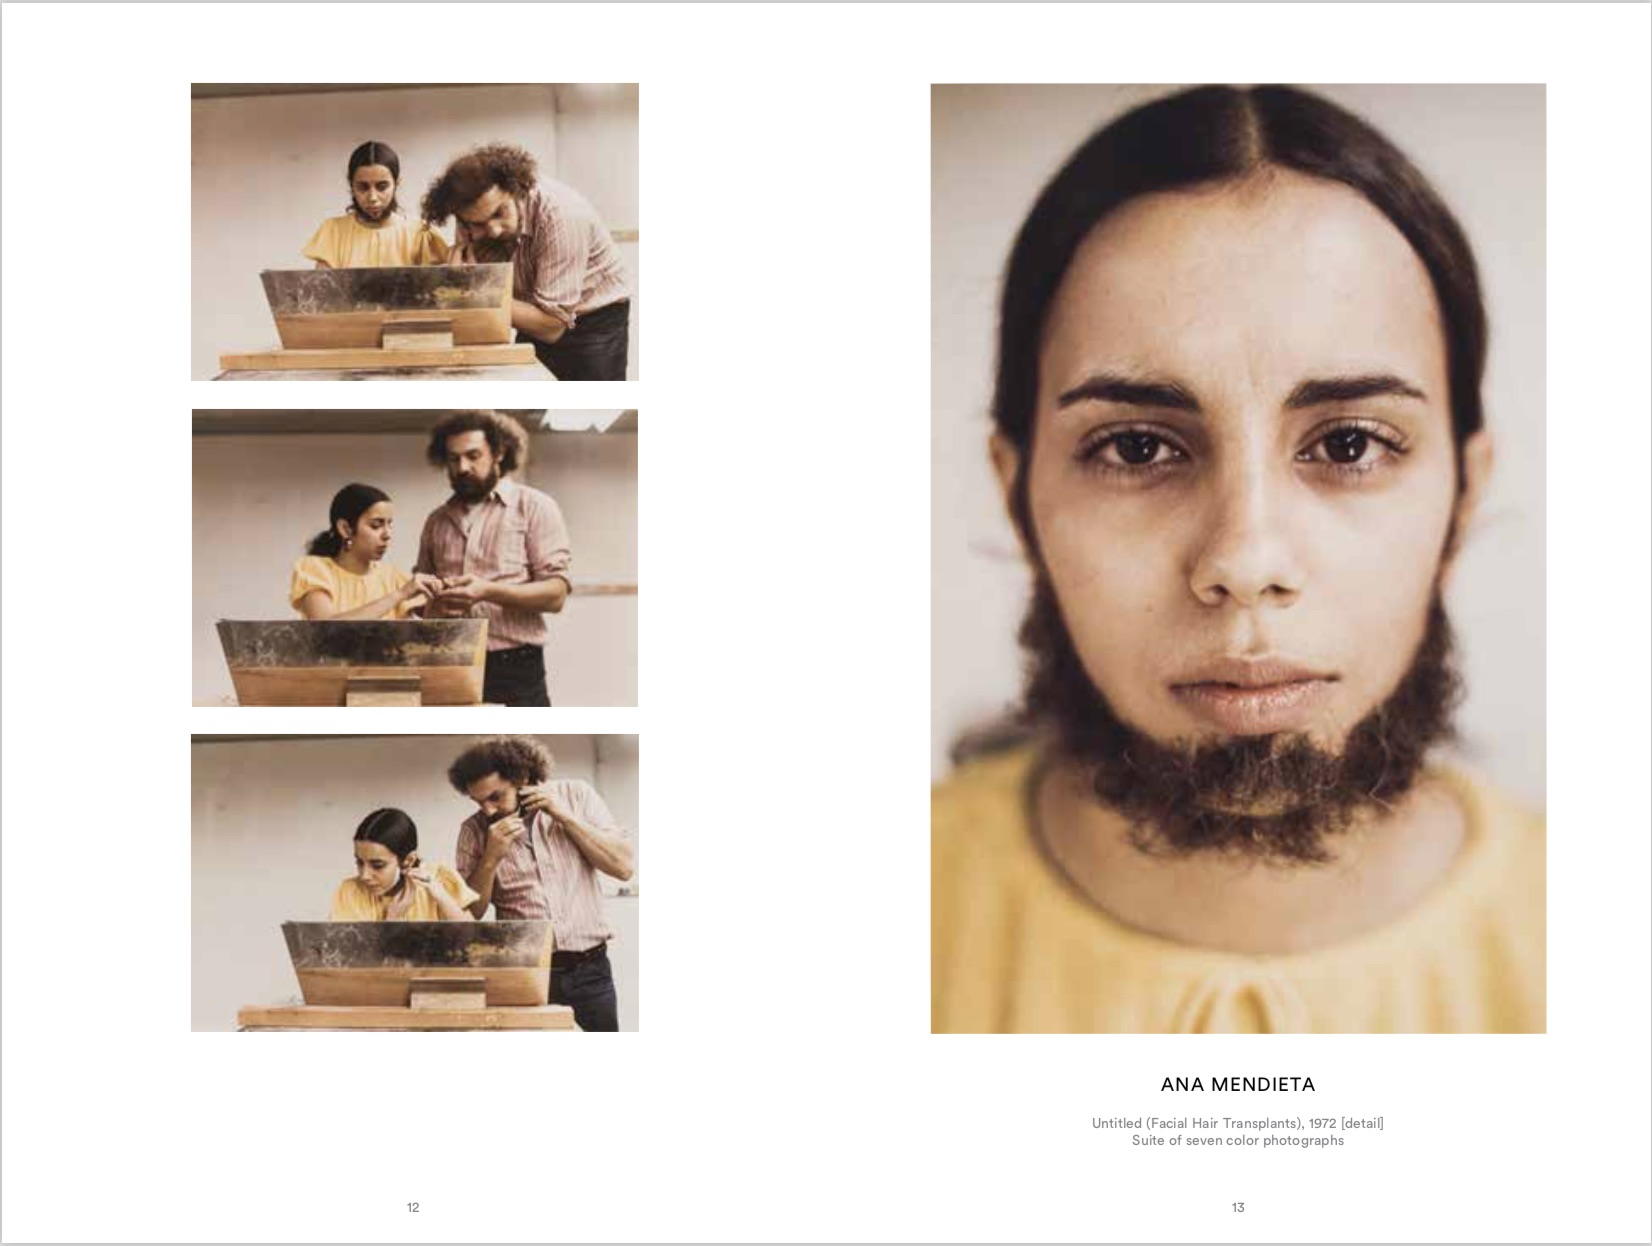 By Julian Bell and Liz Rideal from 500 Self-Portraits copyright Phaidon 2018